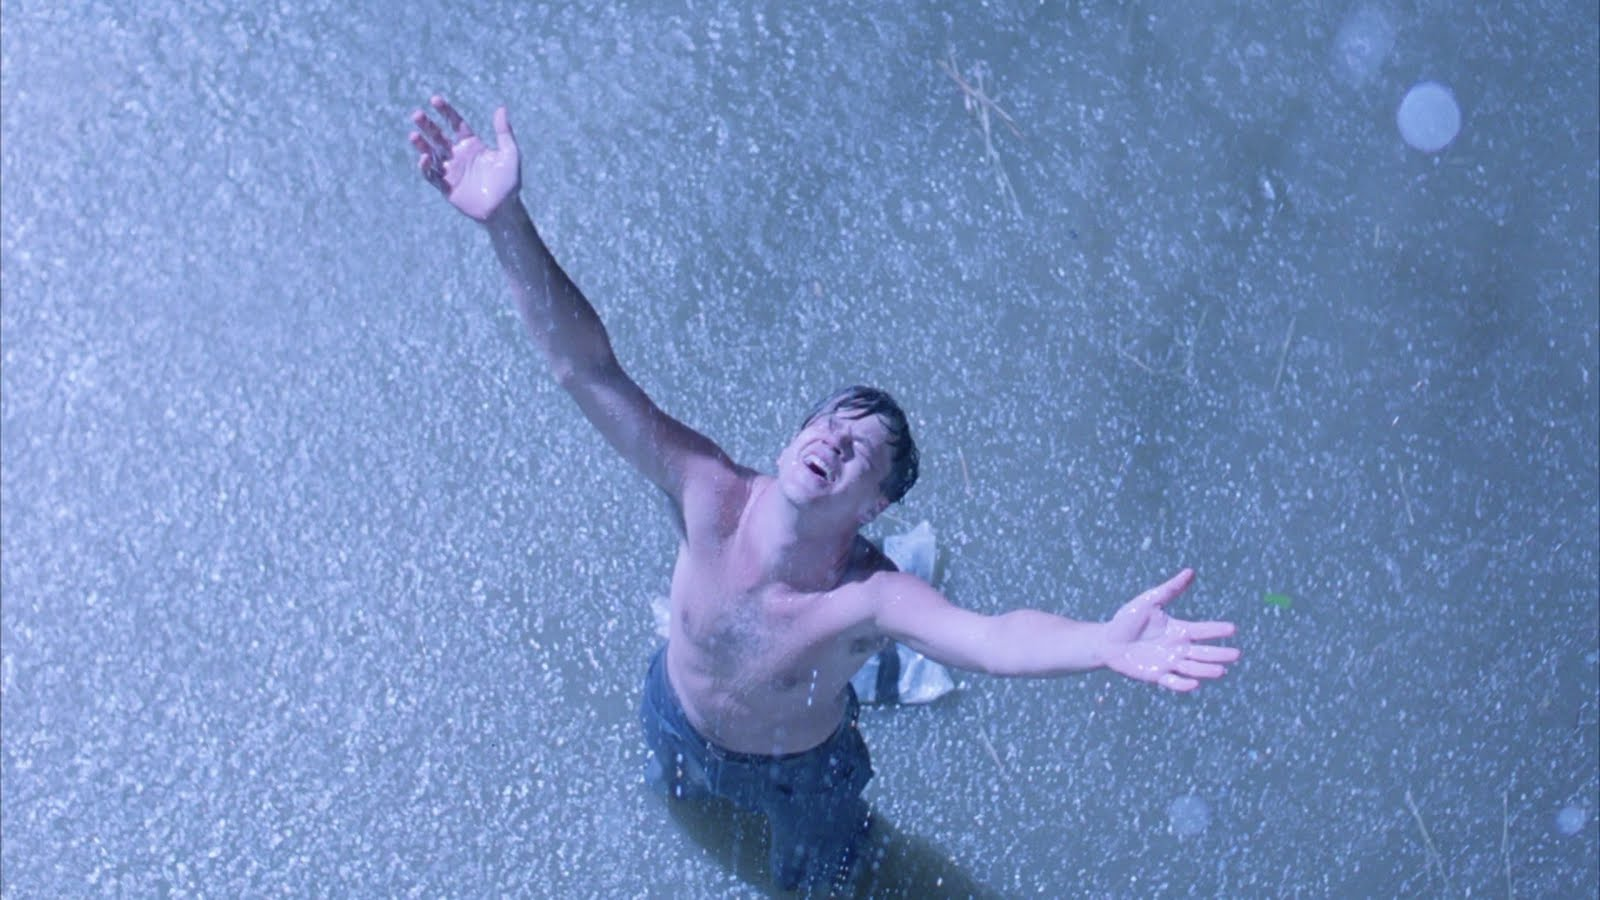 hope in the shawshank redemption The shawshank redemption is a 1994 film about a banker named andy dufresne, who is accused of double murder in the 1940s and begins a life sentence at the fictional shawshank prison, where.